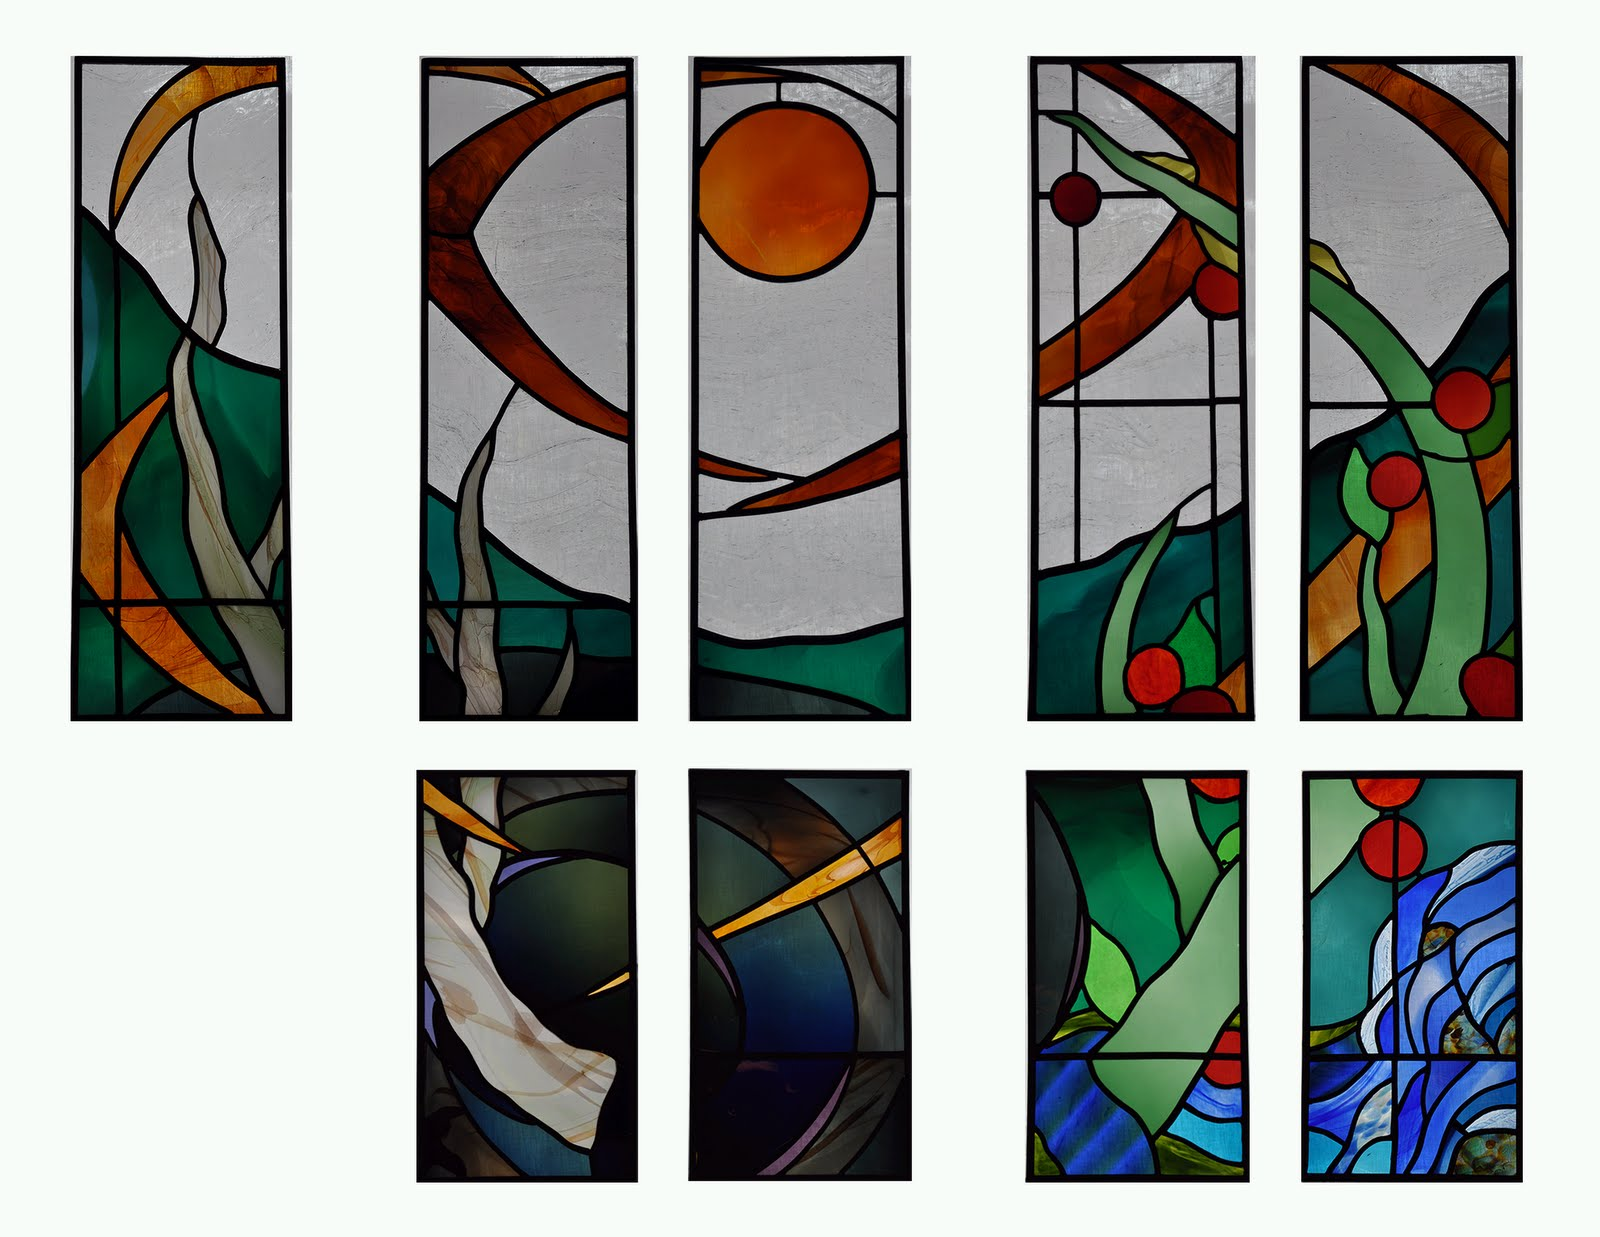 1237 #812806  Is The Future Door Of Koinonia It Will Be A Door Made Of Stained Glass image Stained Glass Entry Doors 41831600